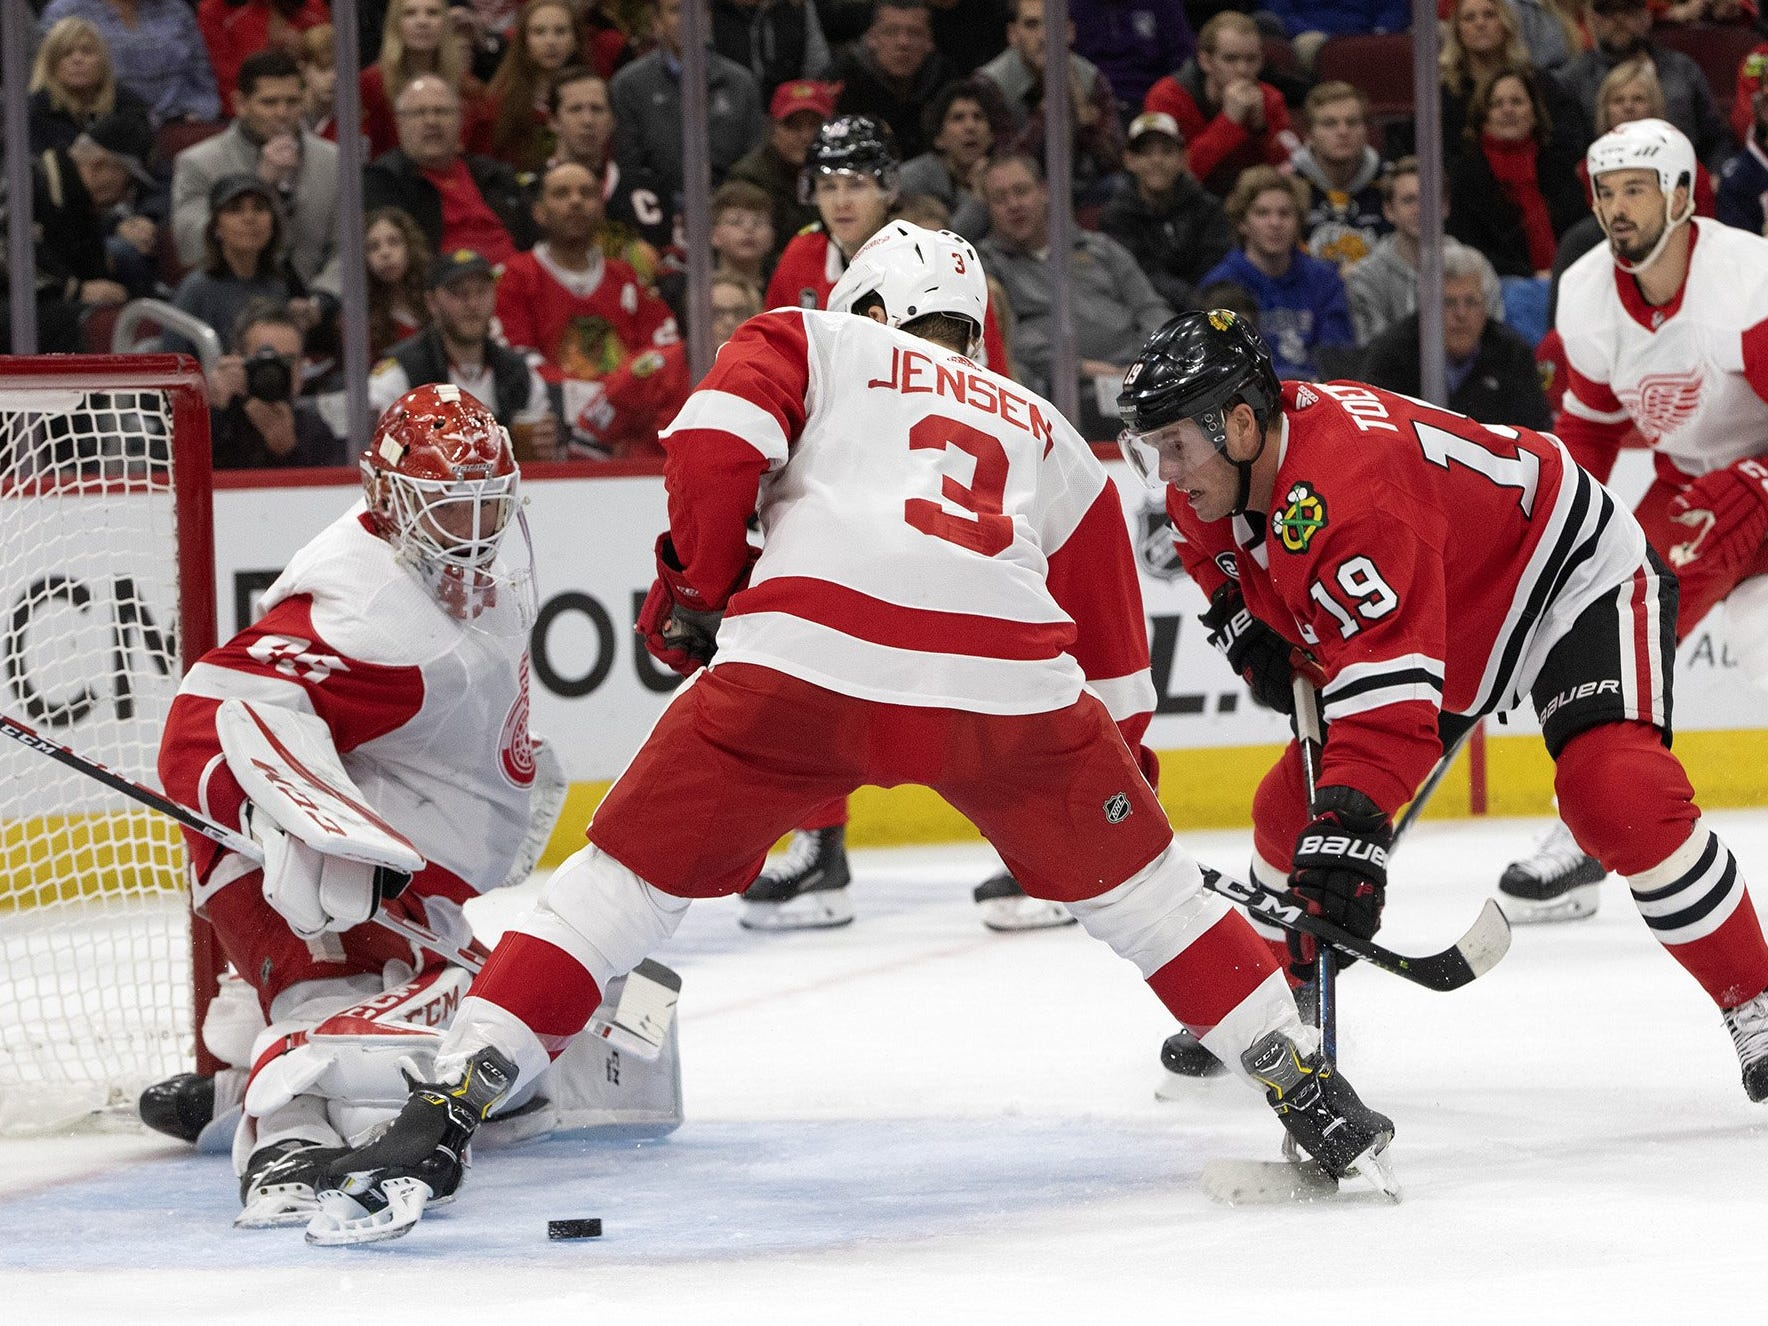 A shot by Chicago Blackhawks center Jonathan Toews is blocked in front of Detroit Red Wings goalie Jonathan Bernier in the first period Sunday, Feb. 10, 2019, at the United Center in Chicago.